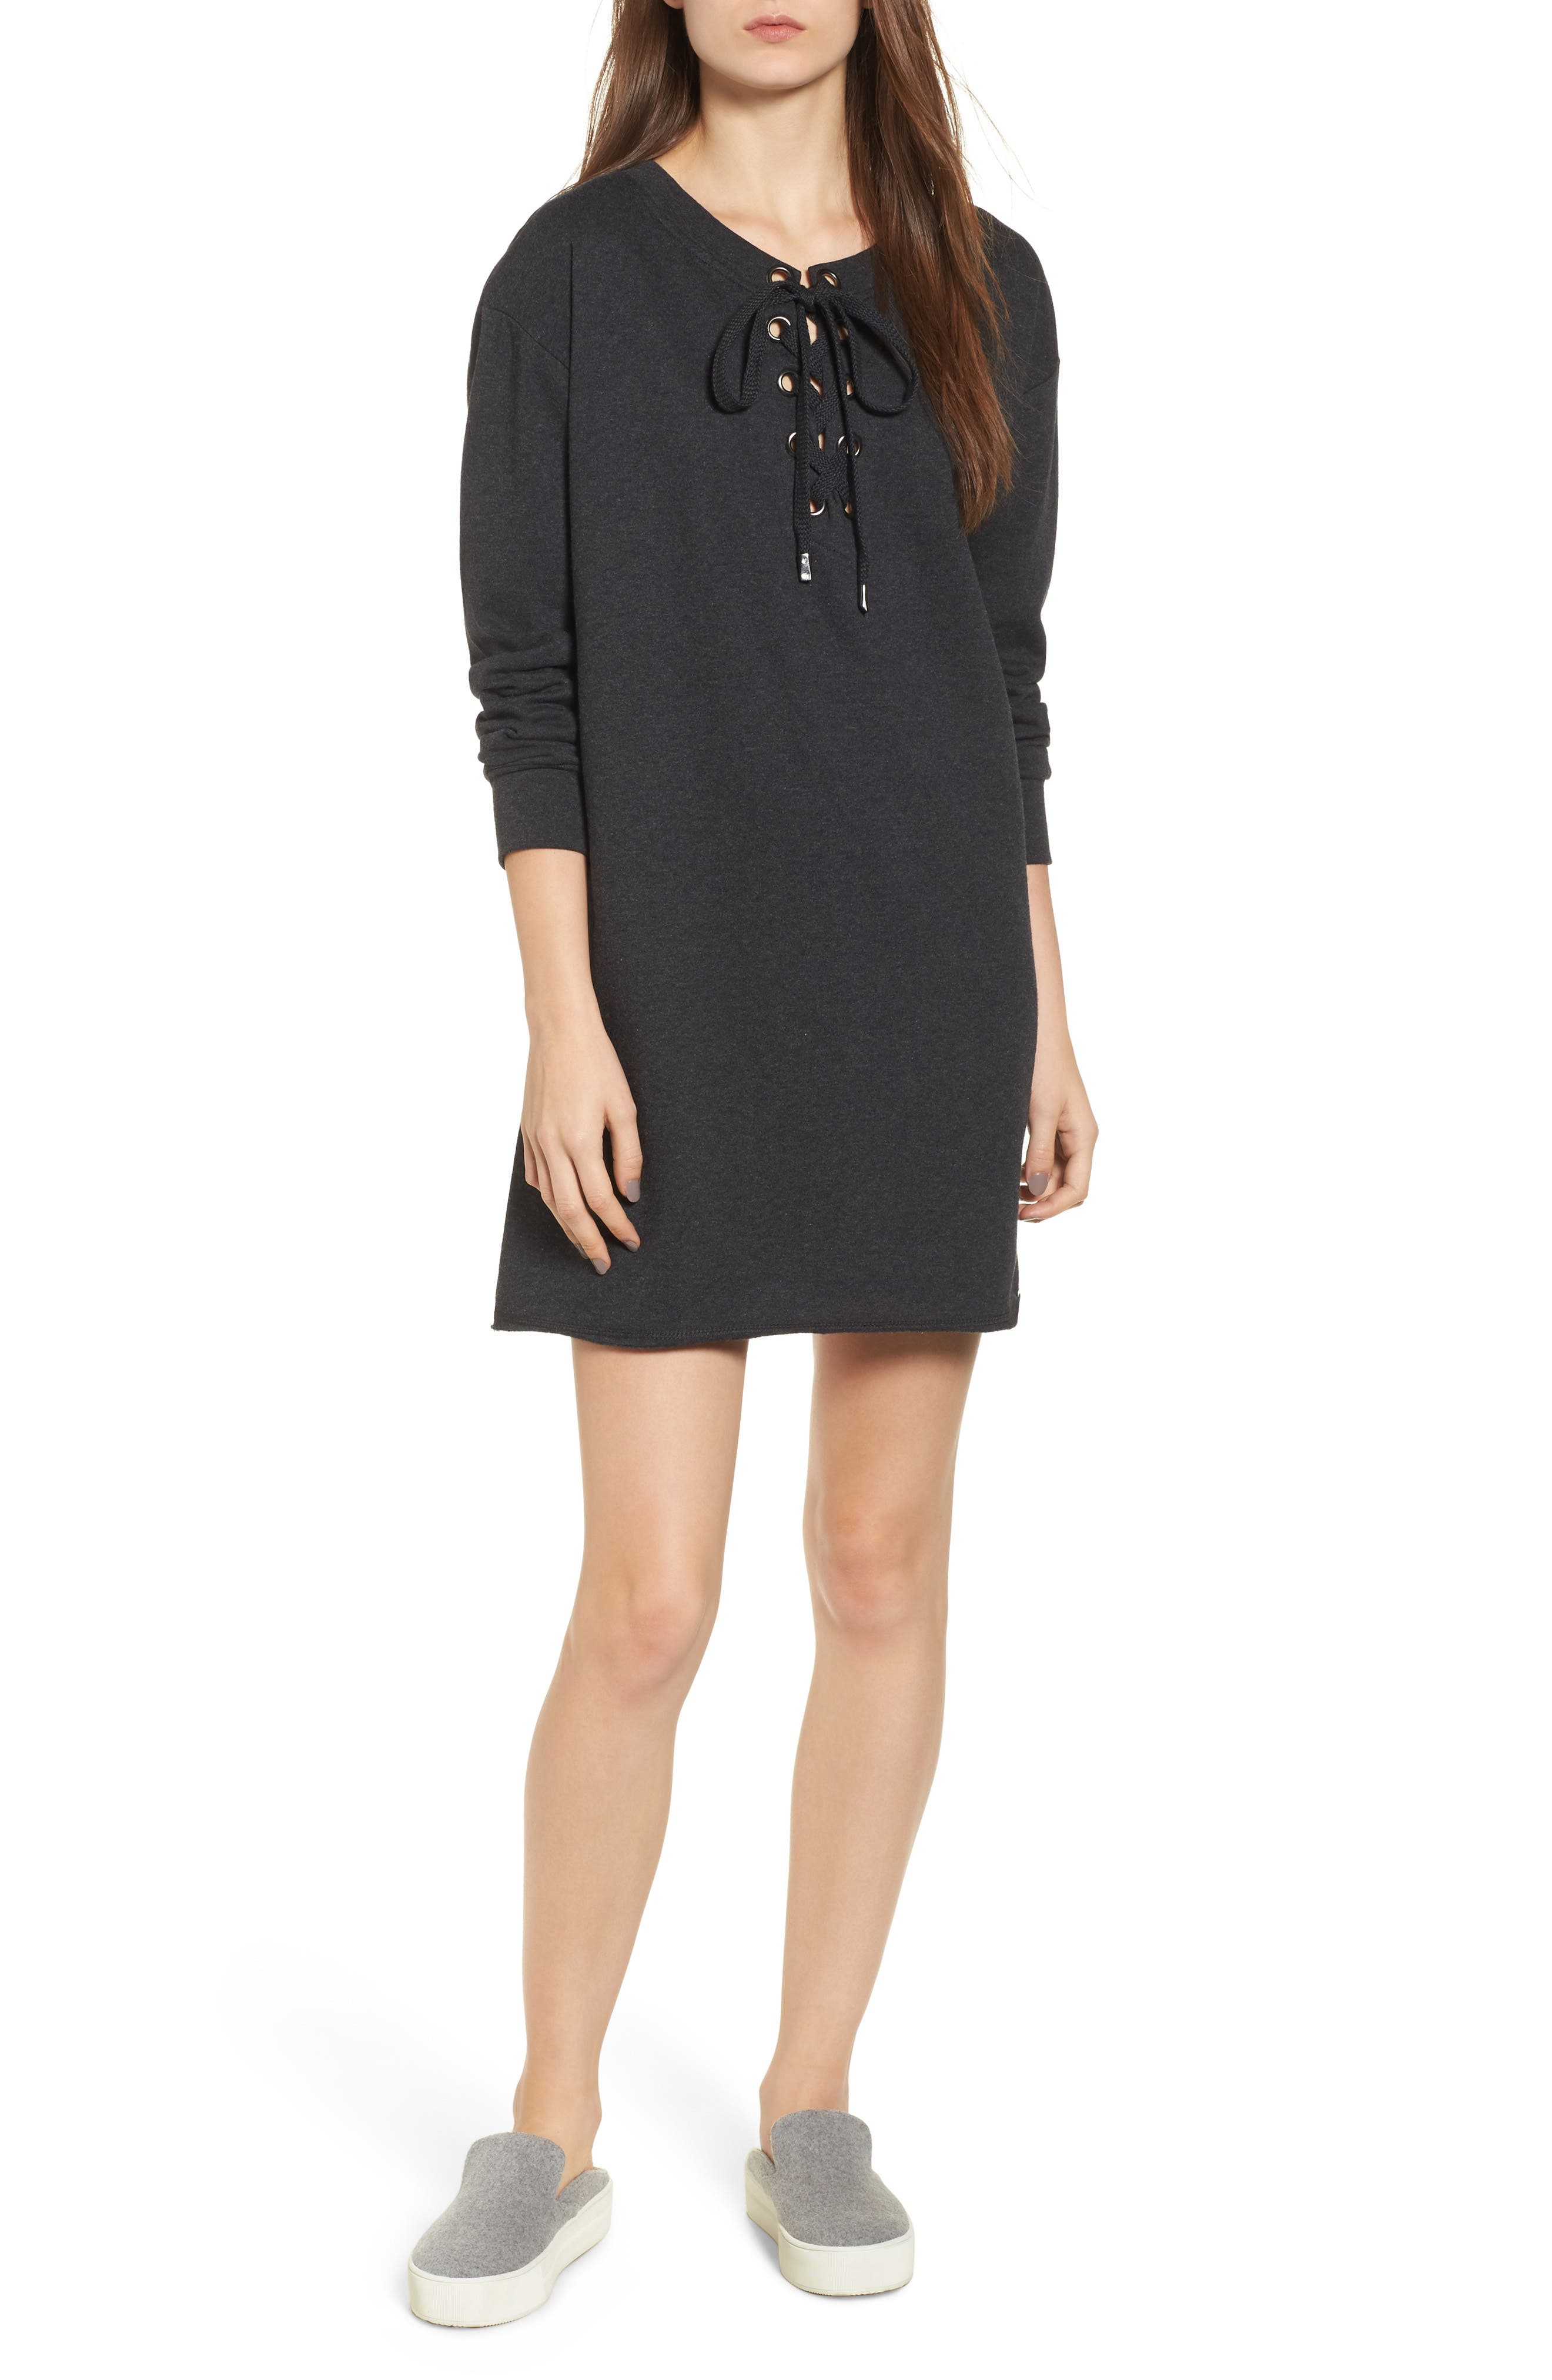 Socialite Lace-Up Sweatshirt Dress